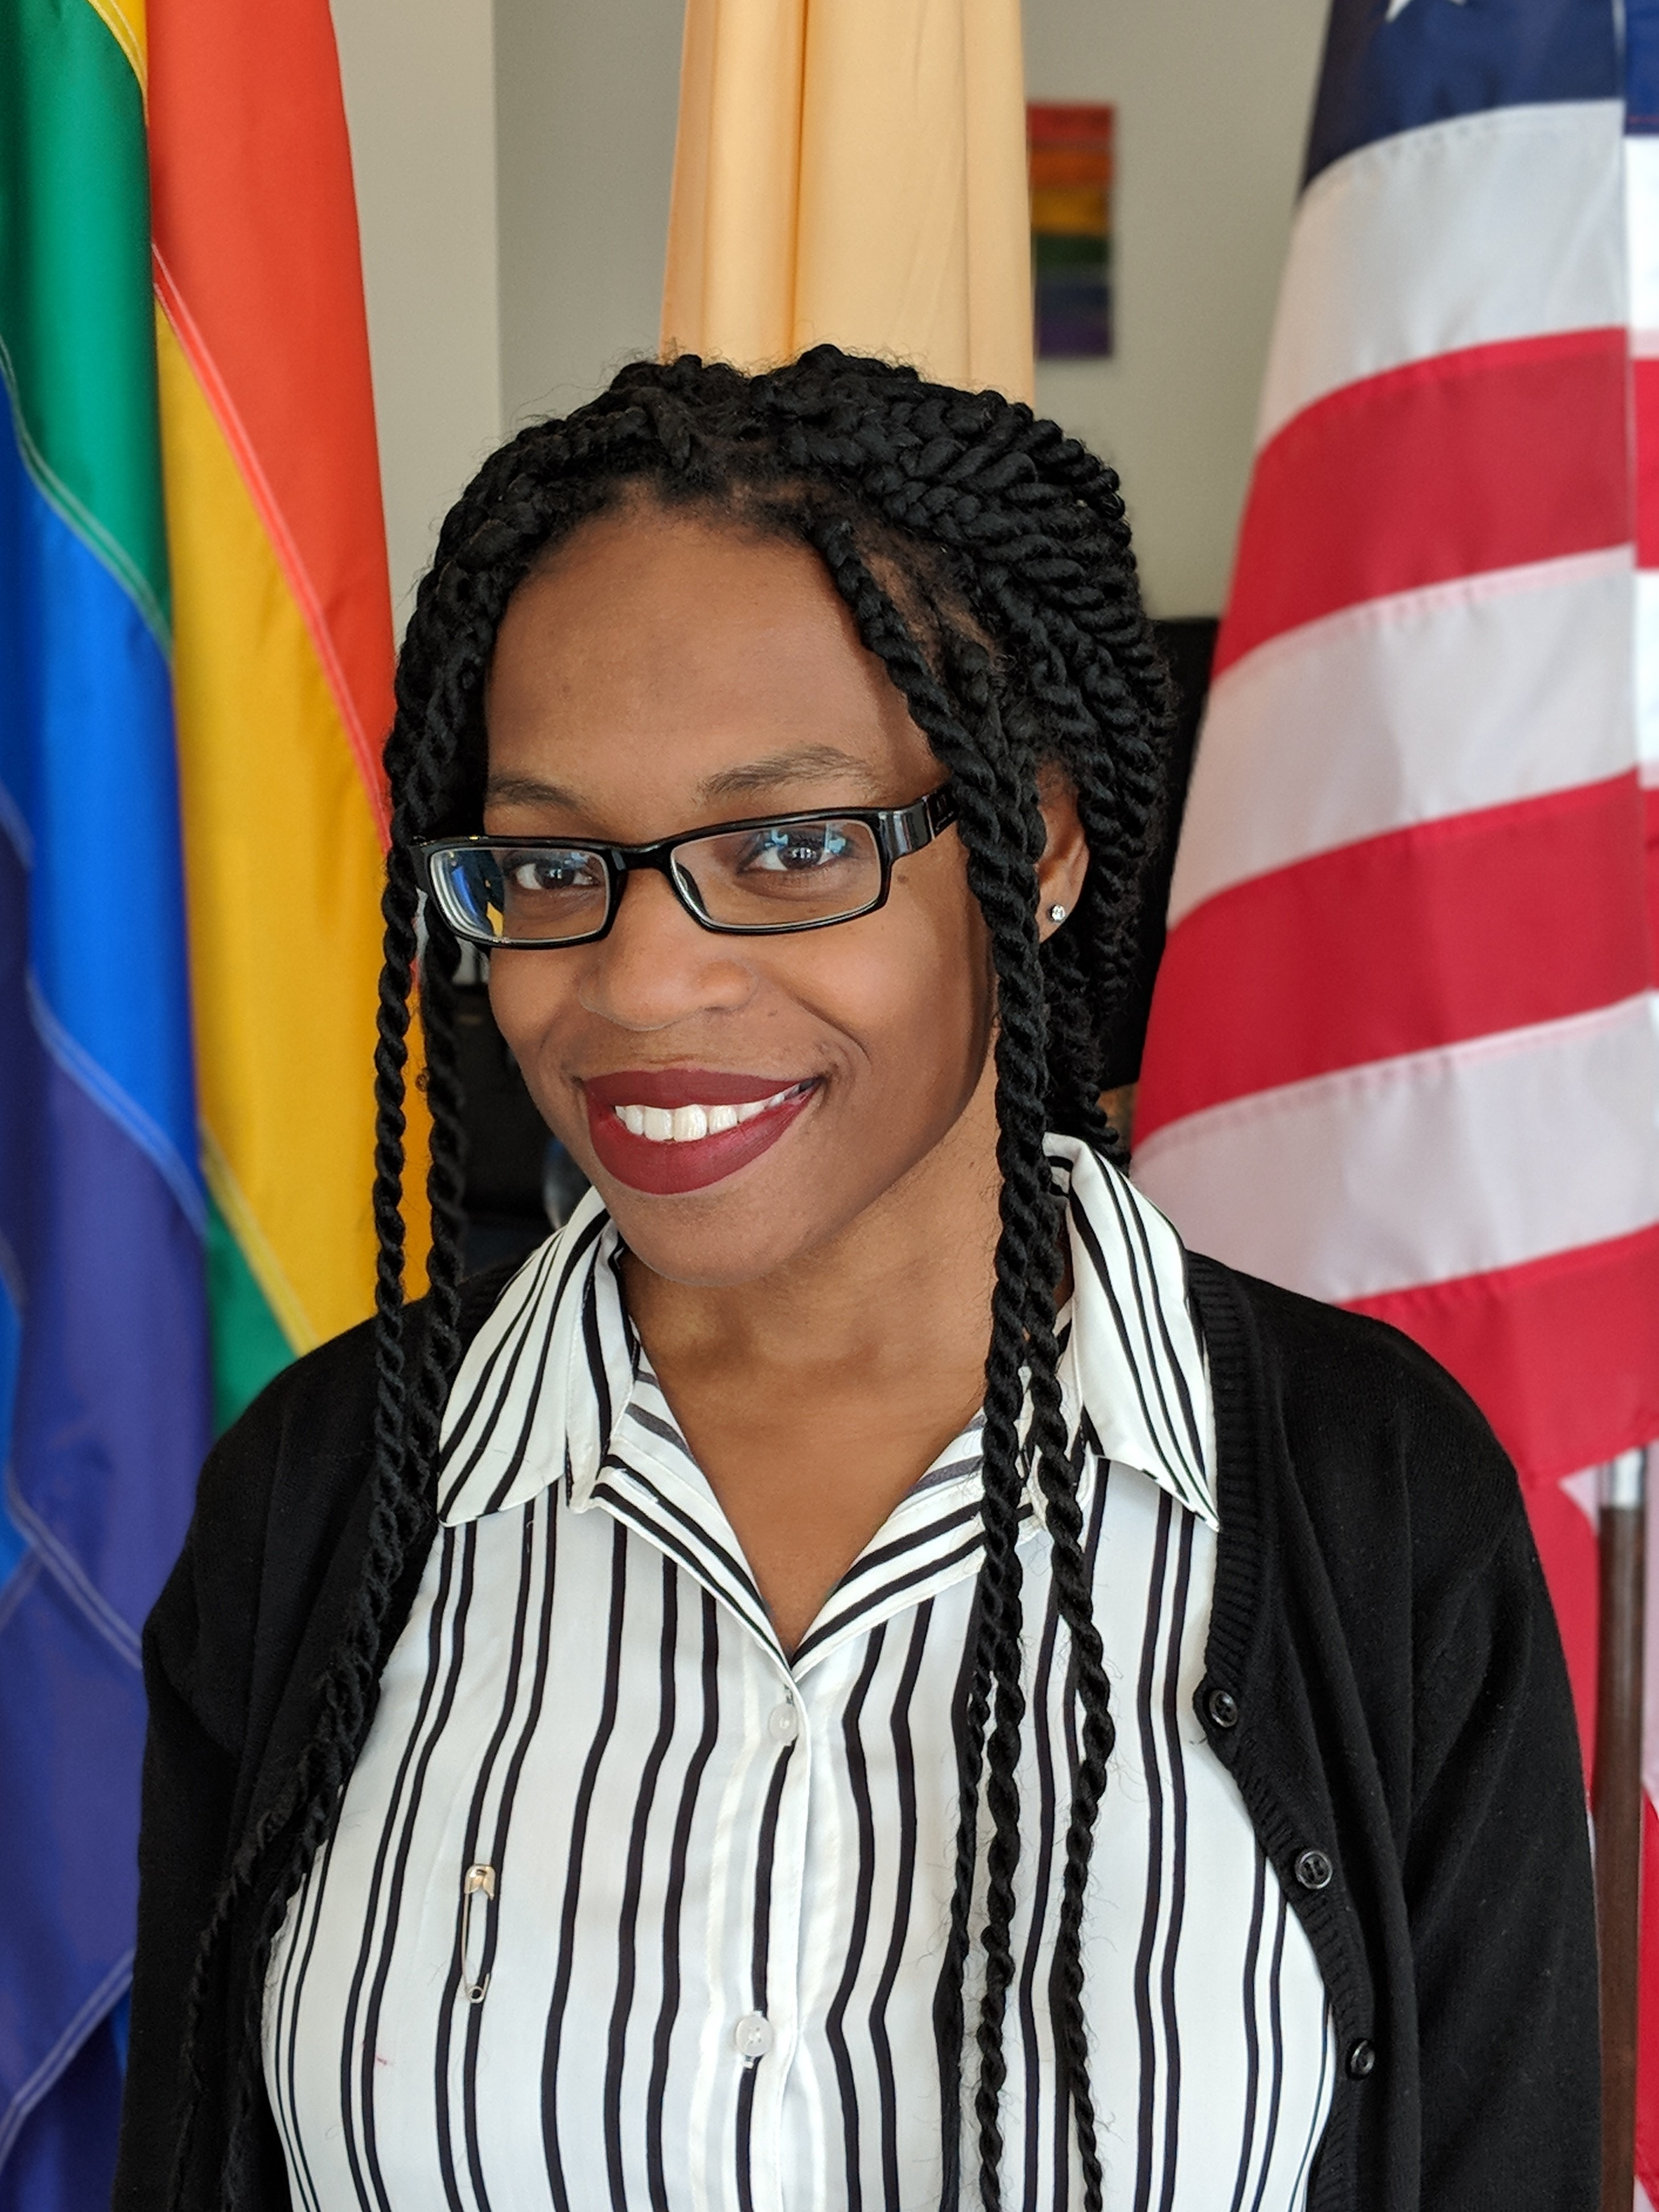 Interview with Dr. Tyree Oredein, Health Educator, Trainer & Consultant focused on LGBTQ Youth